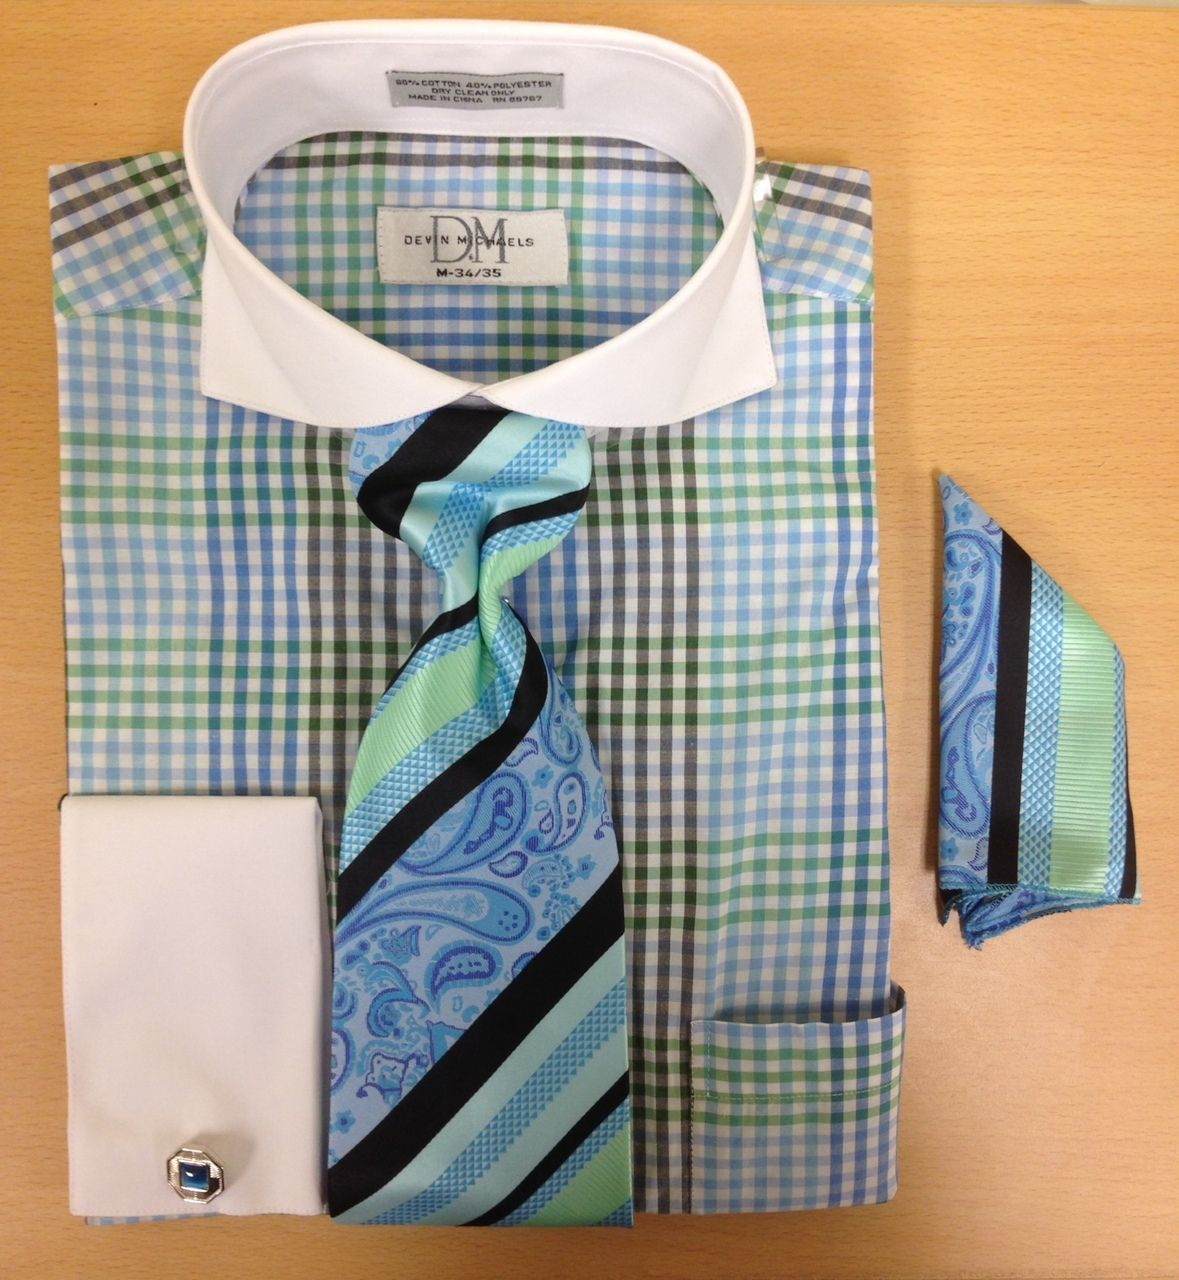 Men's Fashion Three-Tone Gingham Pattern Cufflink Dress Shirt Set - Blue/Green/Black